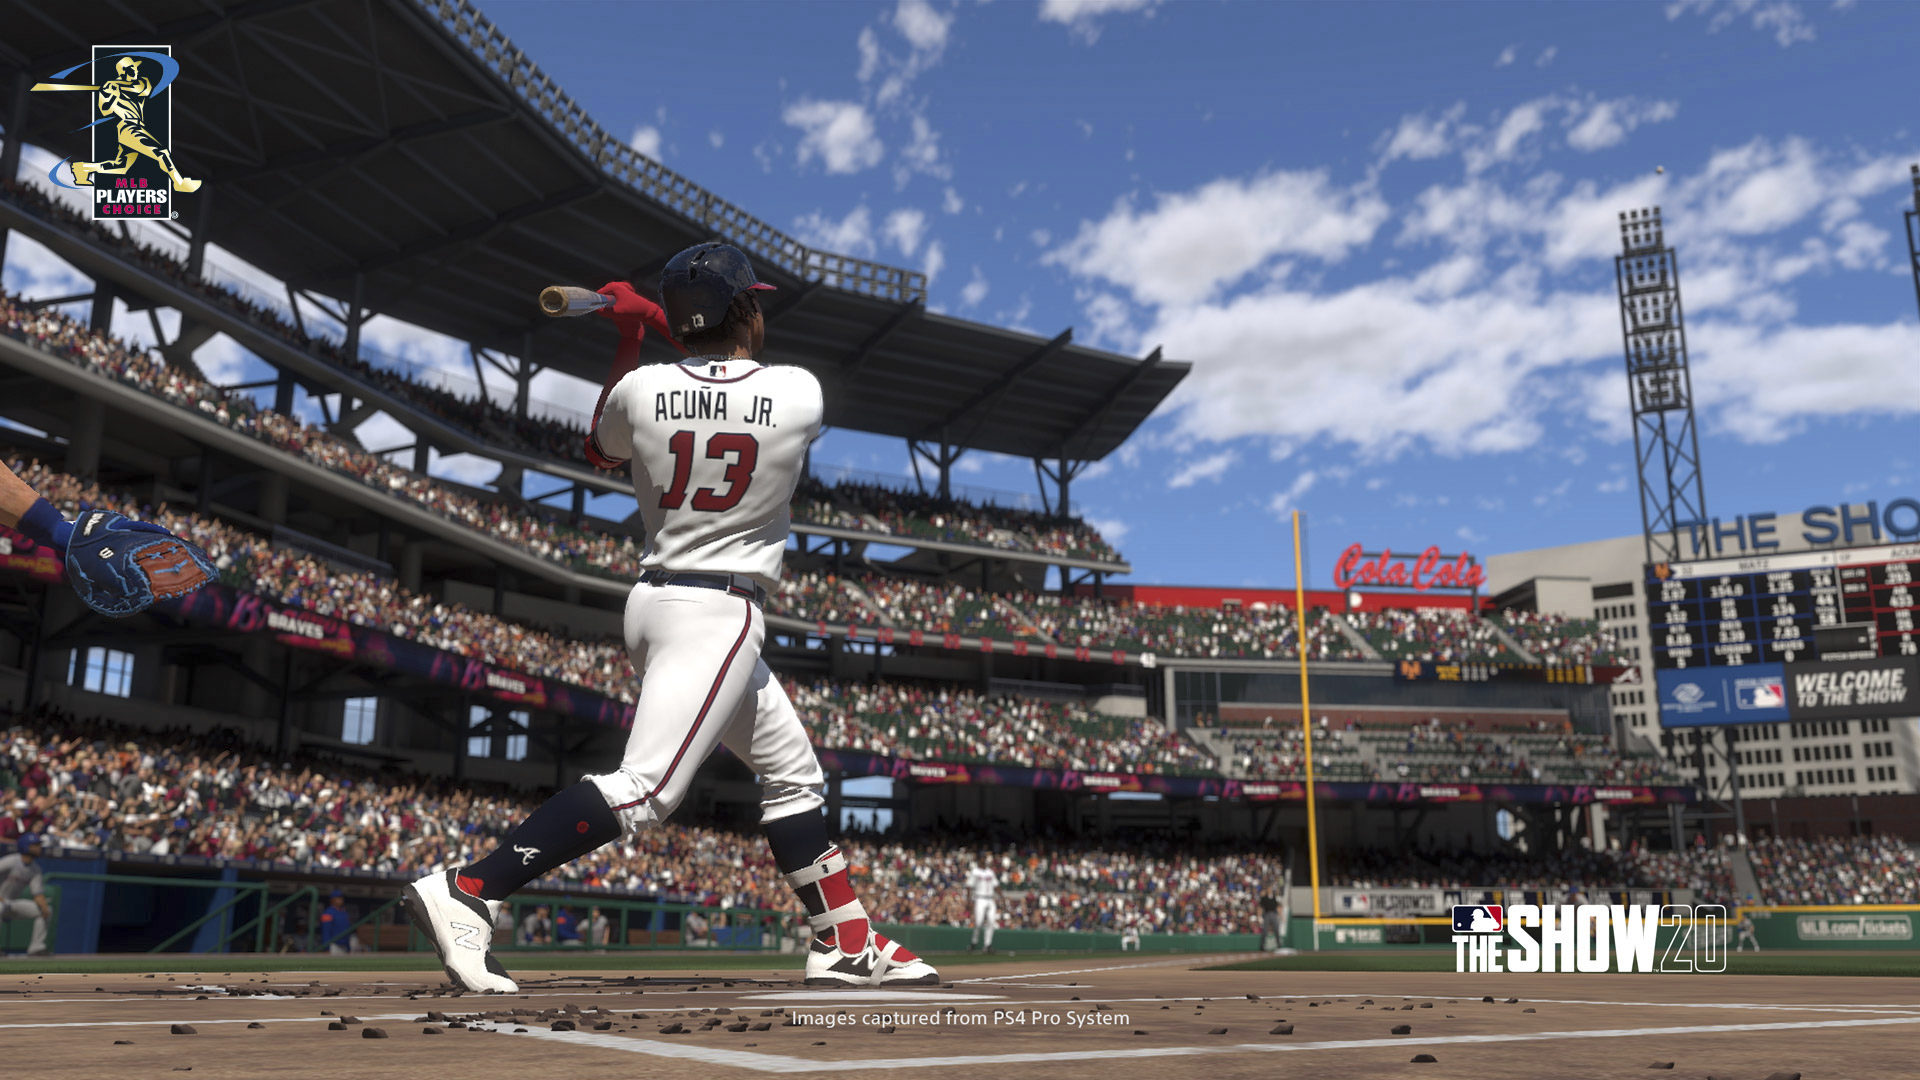 Captura de pantalla 1 de MLB The Show 20